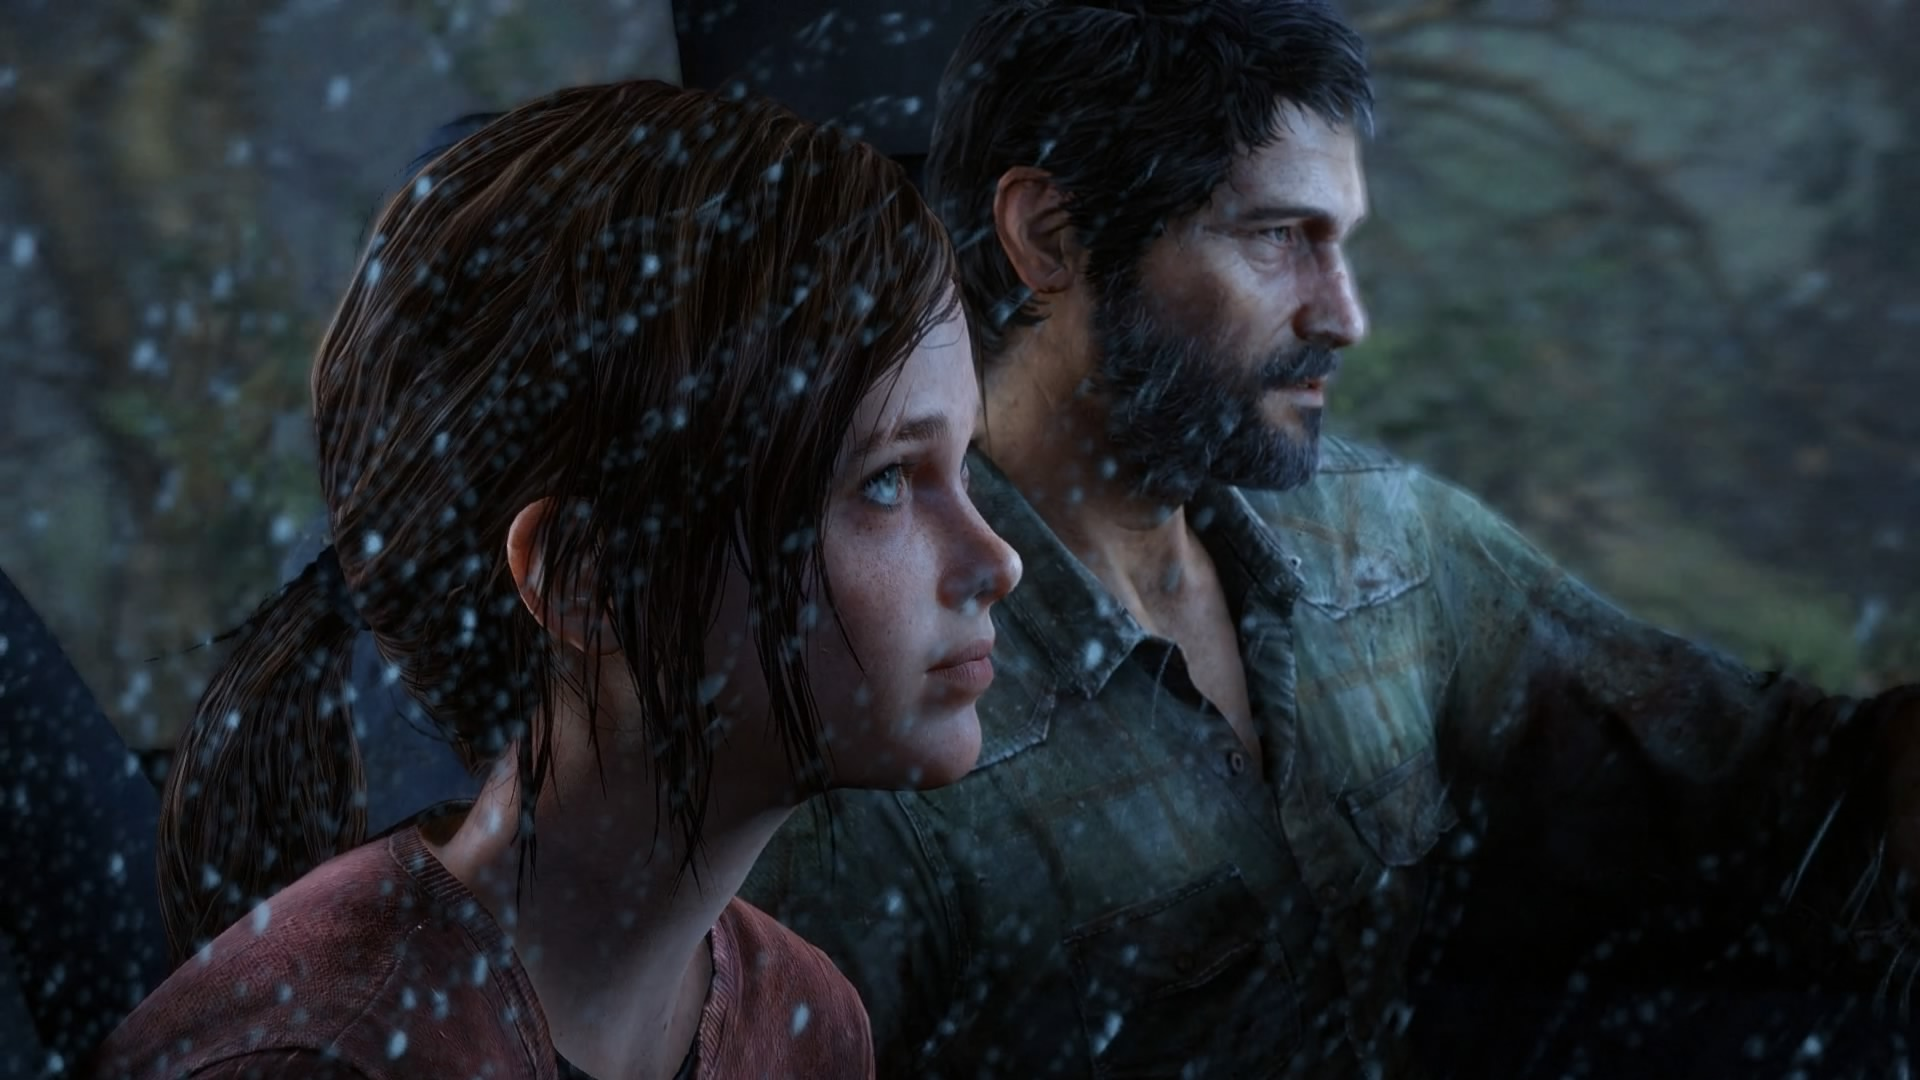 The Last Of Us Fondo De Pantalla Hd Fondo De Escritorio